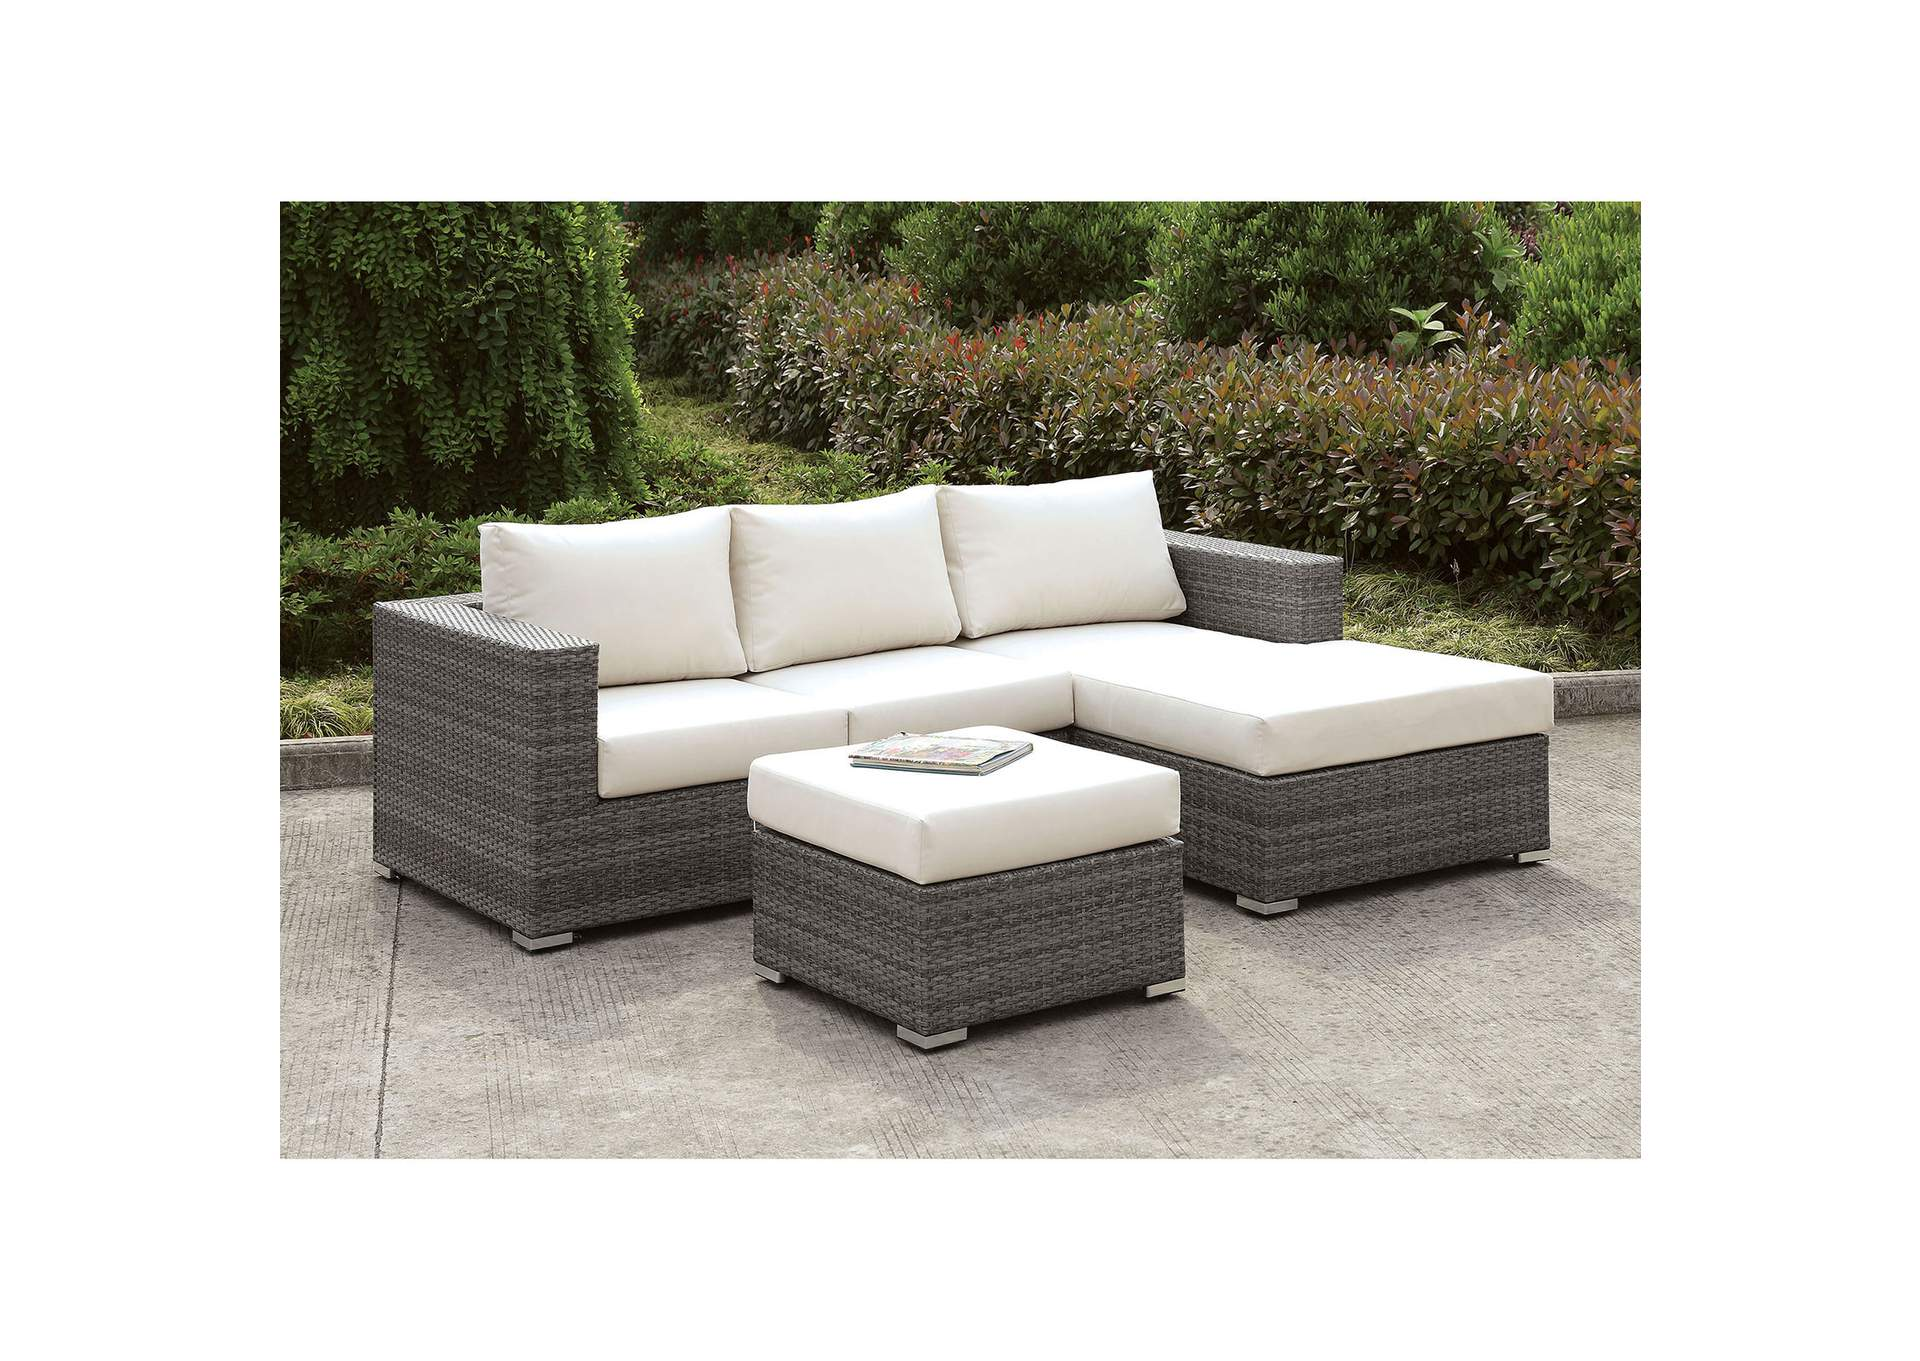 Terrific Harlem Furniture Somani Light Gray Ivory Wicker Small L Gmtry Best Dining Table And Chair Ideas Images Gmtryco